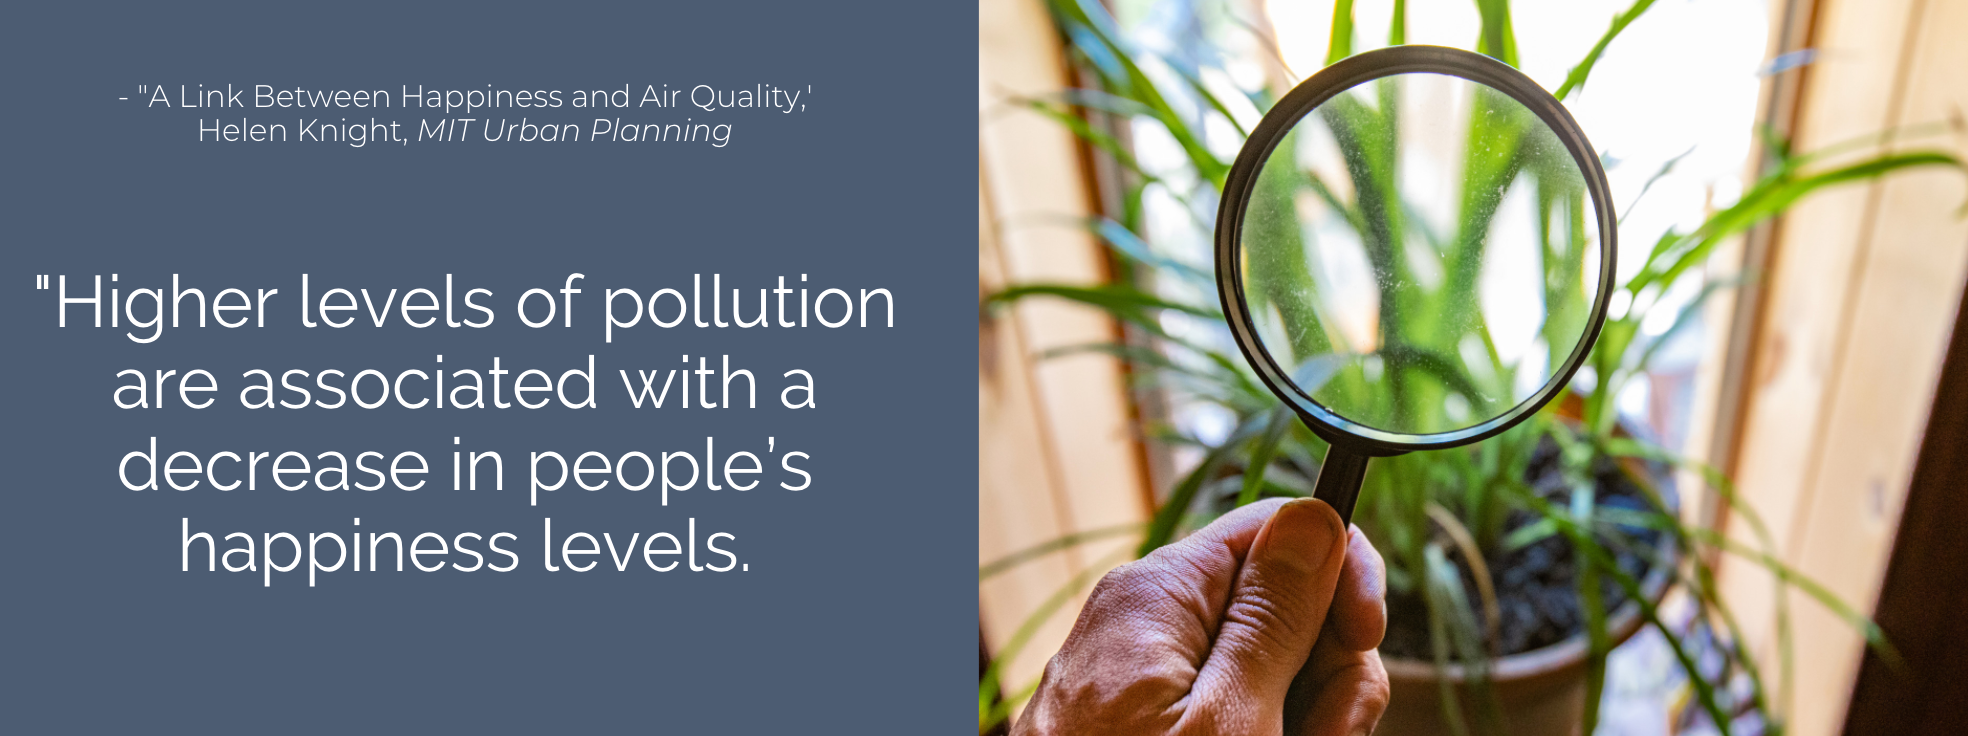 Higher levels of pollution are associated with a decrease in people's happiness levels